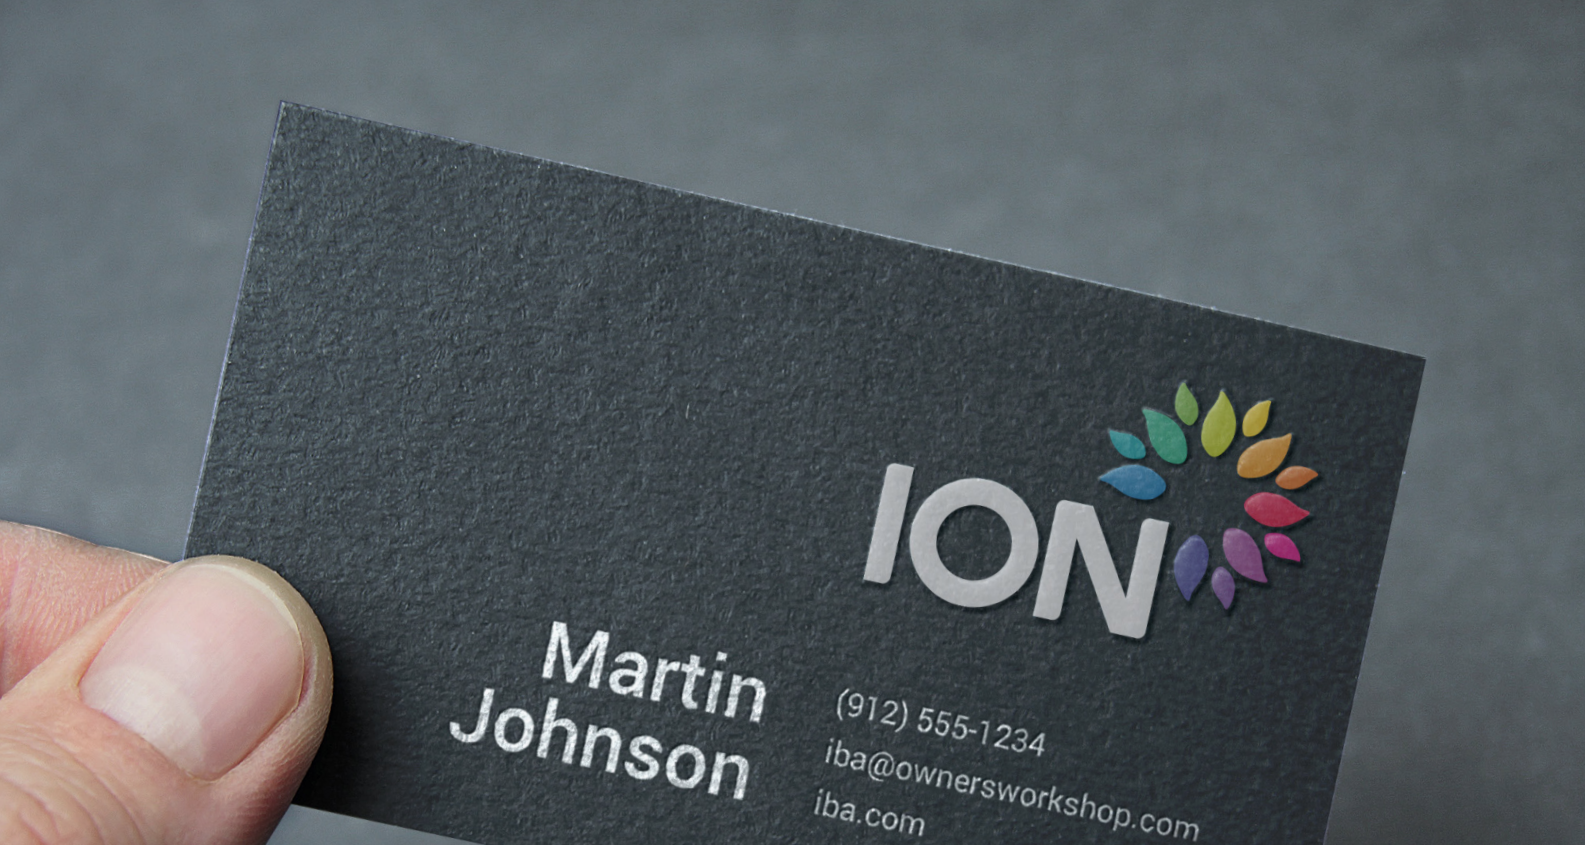 Company branding - one of the creative agency services provided by Design Inc